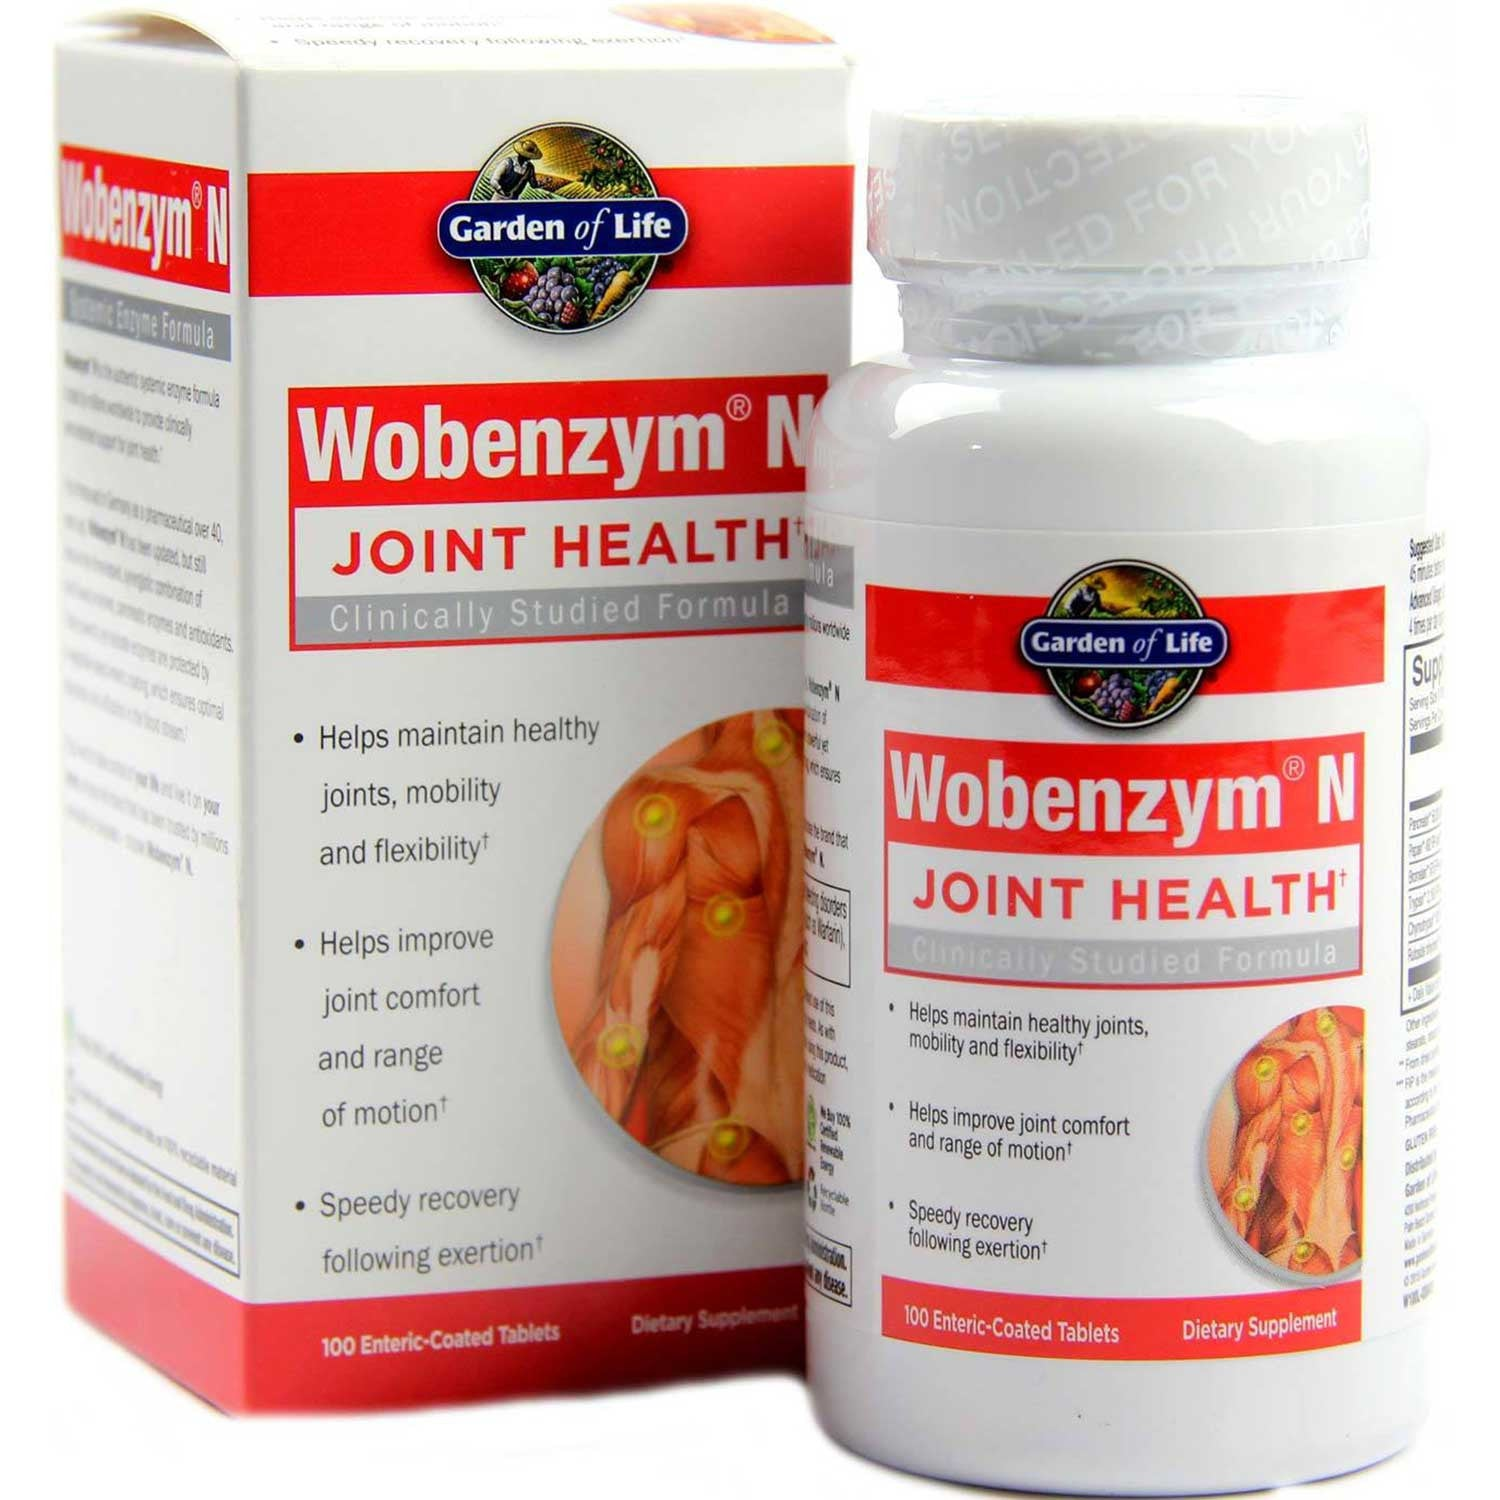 Garden of Life Wobenzym N (Enteric-Coated), 200 tabs.-NaturesWisdom